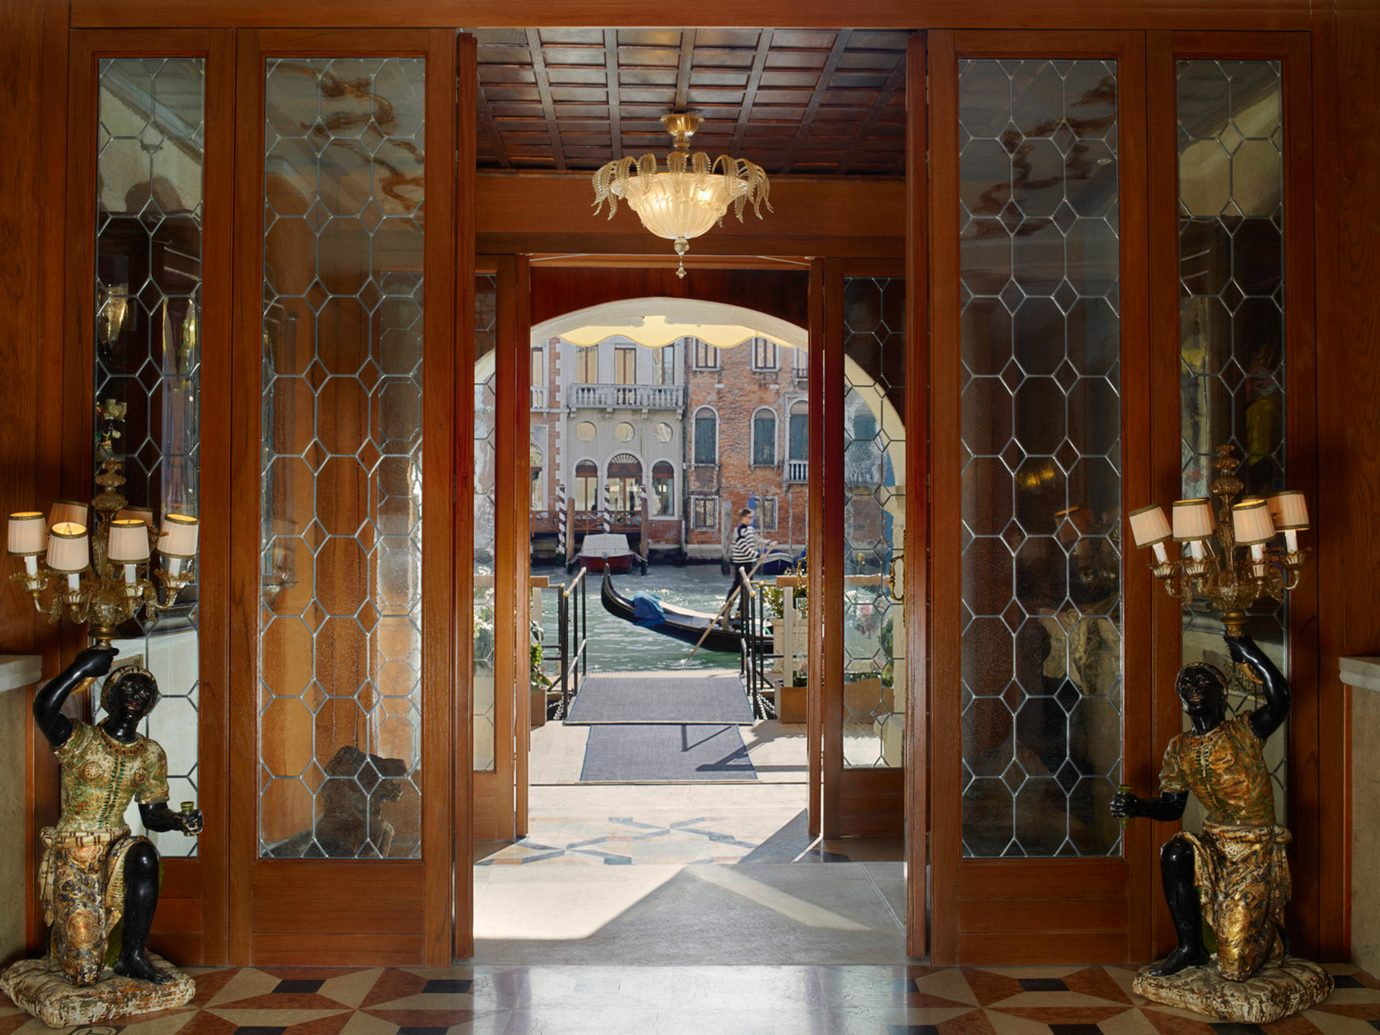 City Elegant Historic Hotels Lobby Luxury Trip Ideas indoor building estate interior design palace home ancient history wood mansion furniture tourist attraction door hall chapel carving